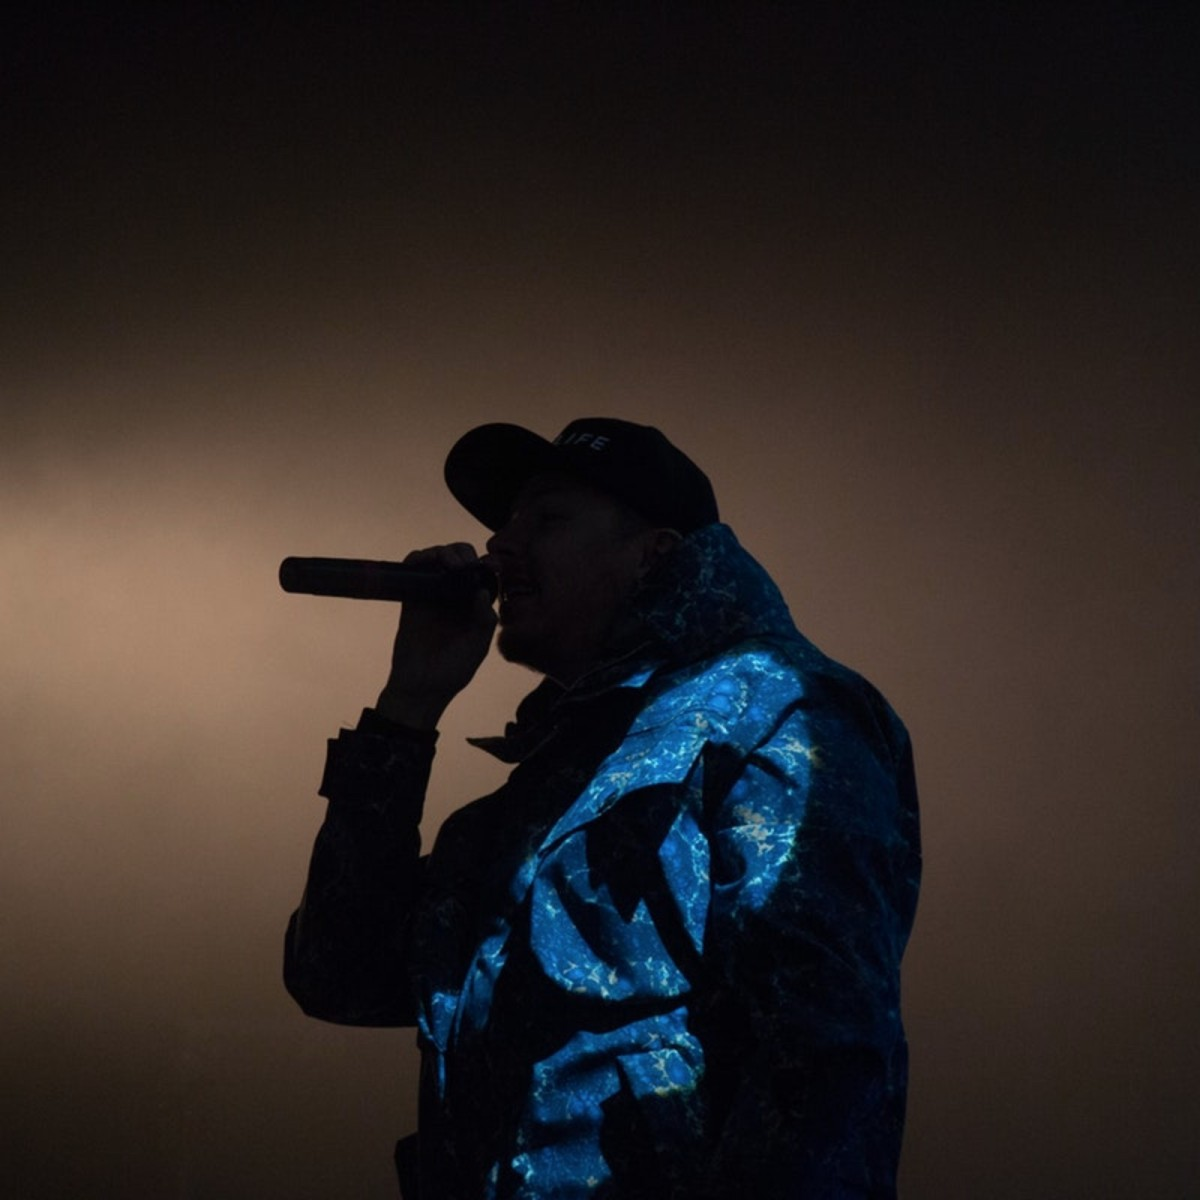 Jay-Z's 4:44 Footnotes: Self-reflection onRacism